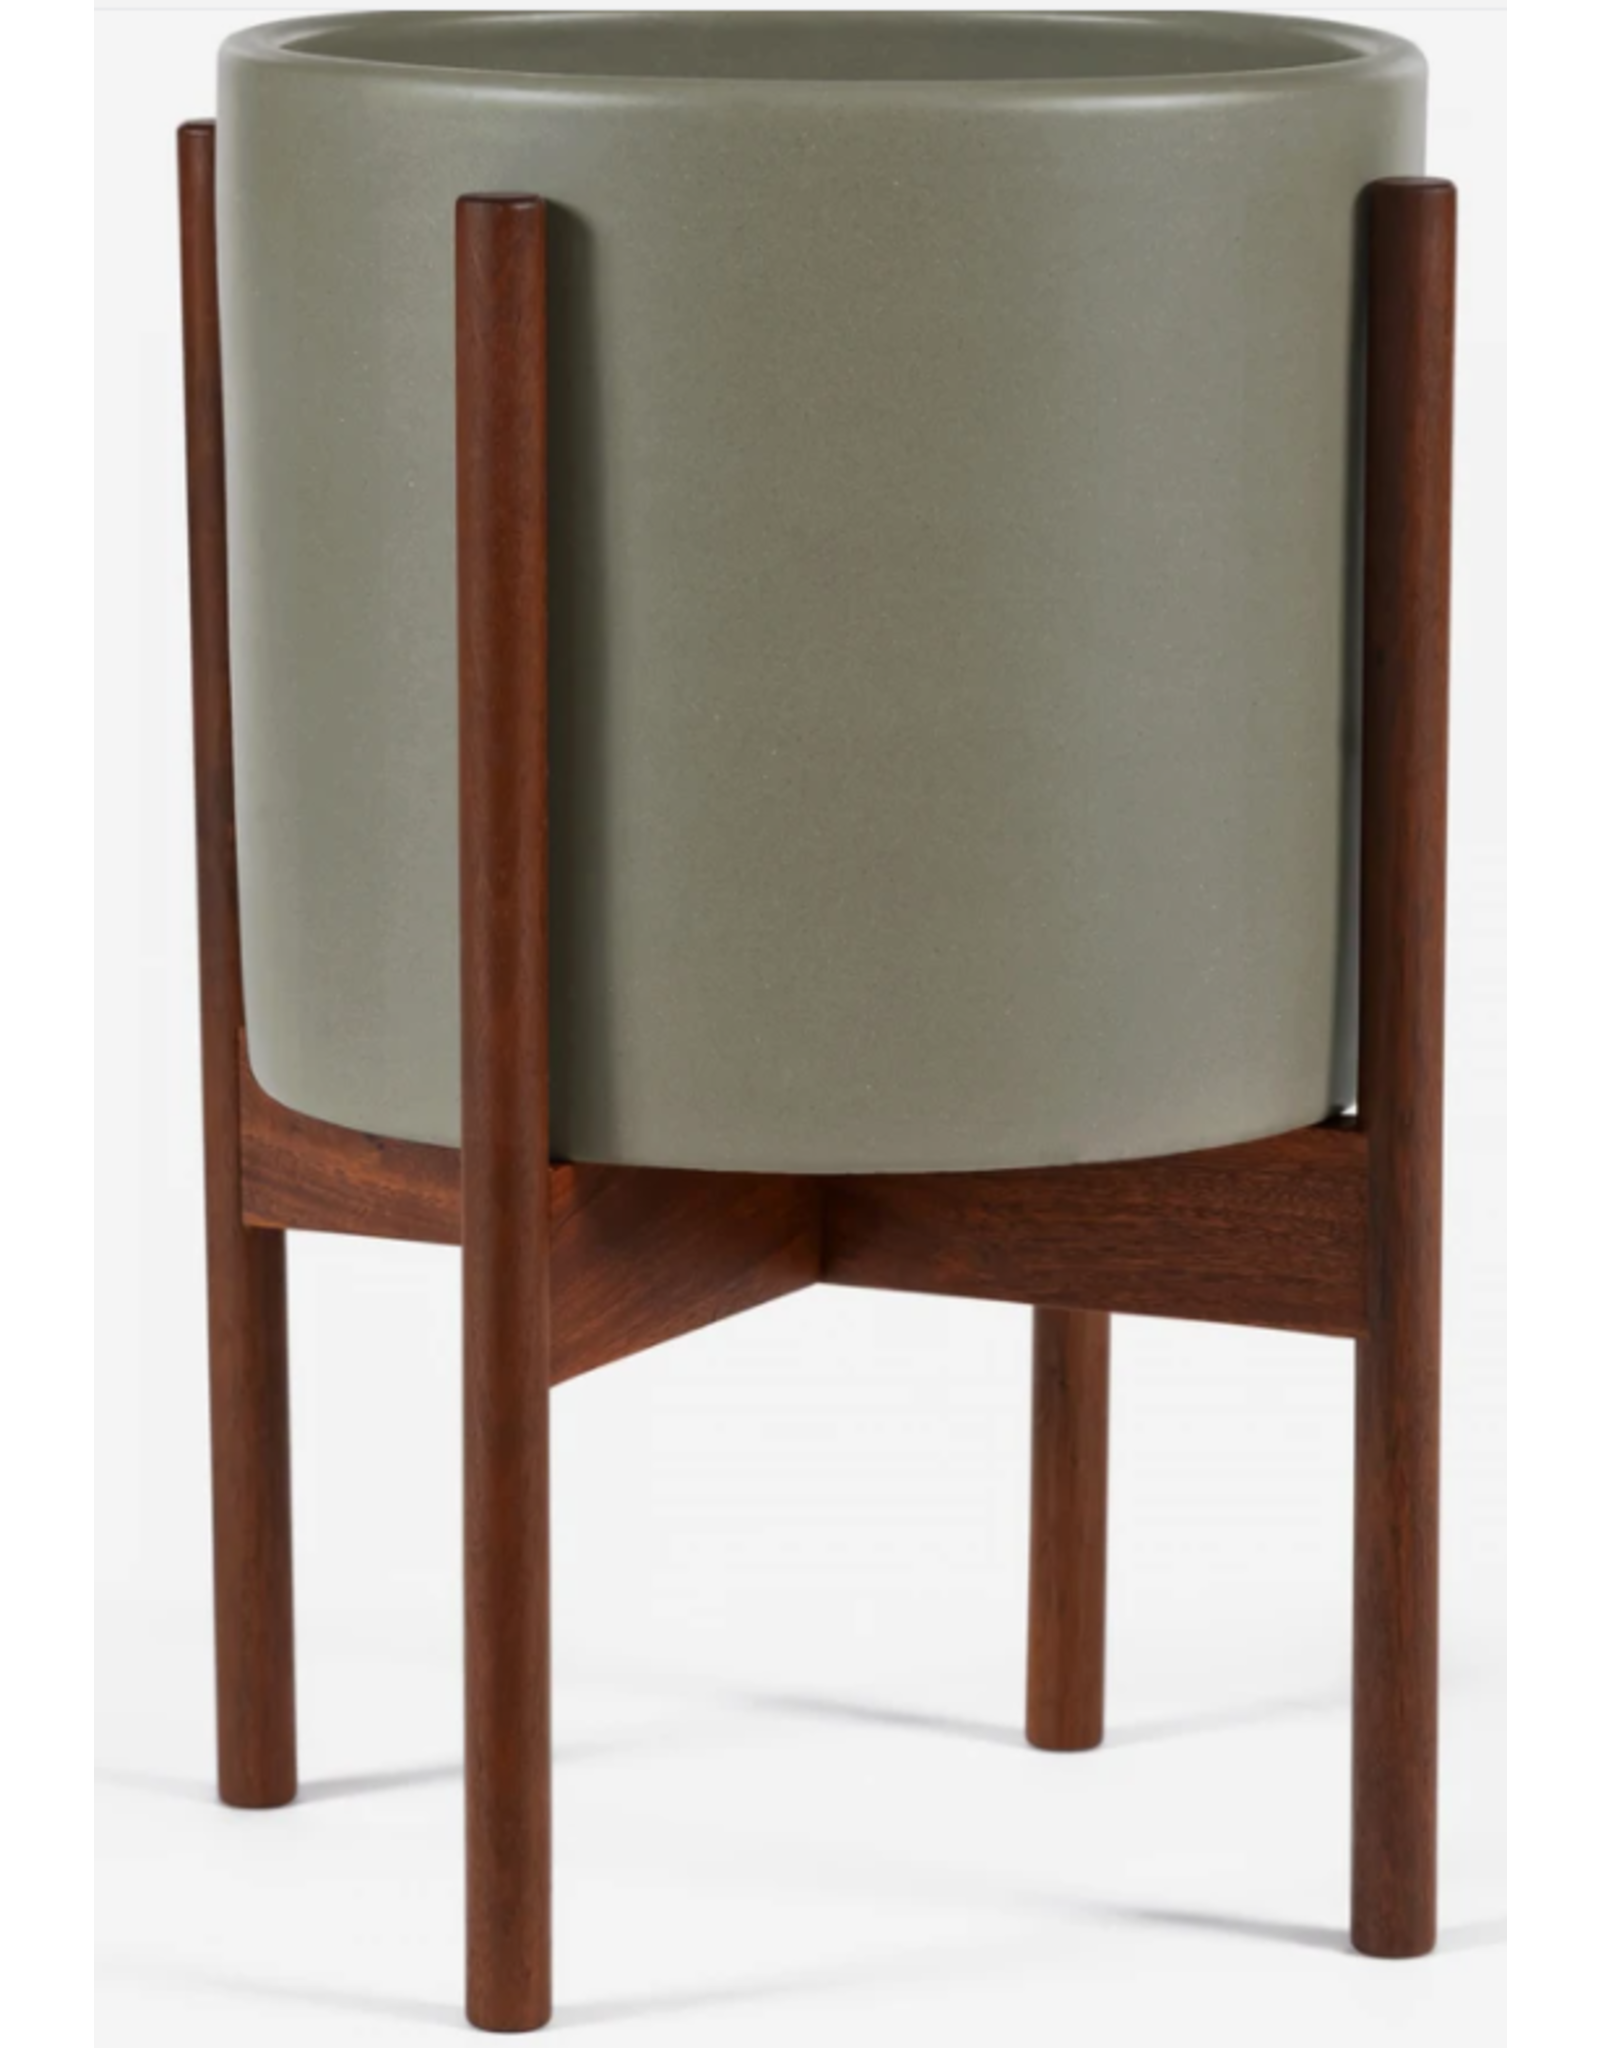 Modernica Pebble Cylinder with Wood Stand Small